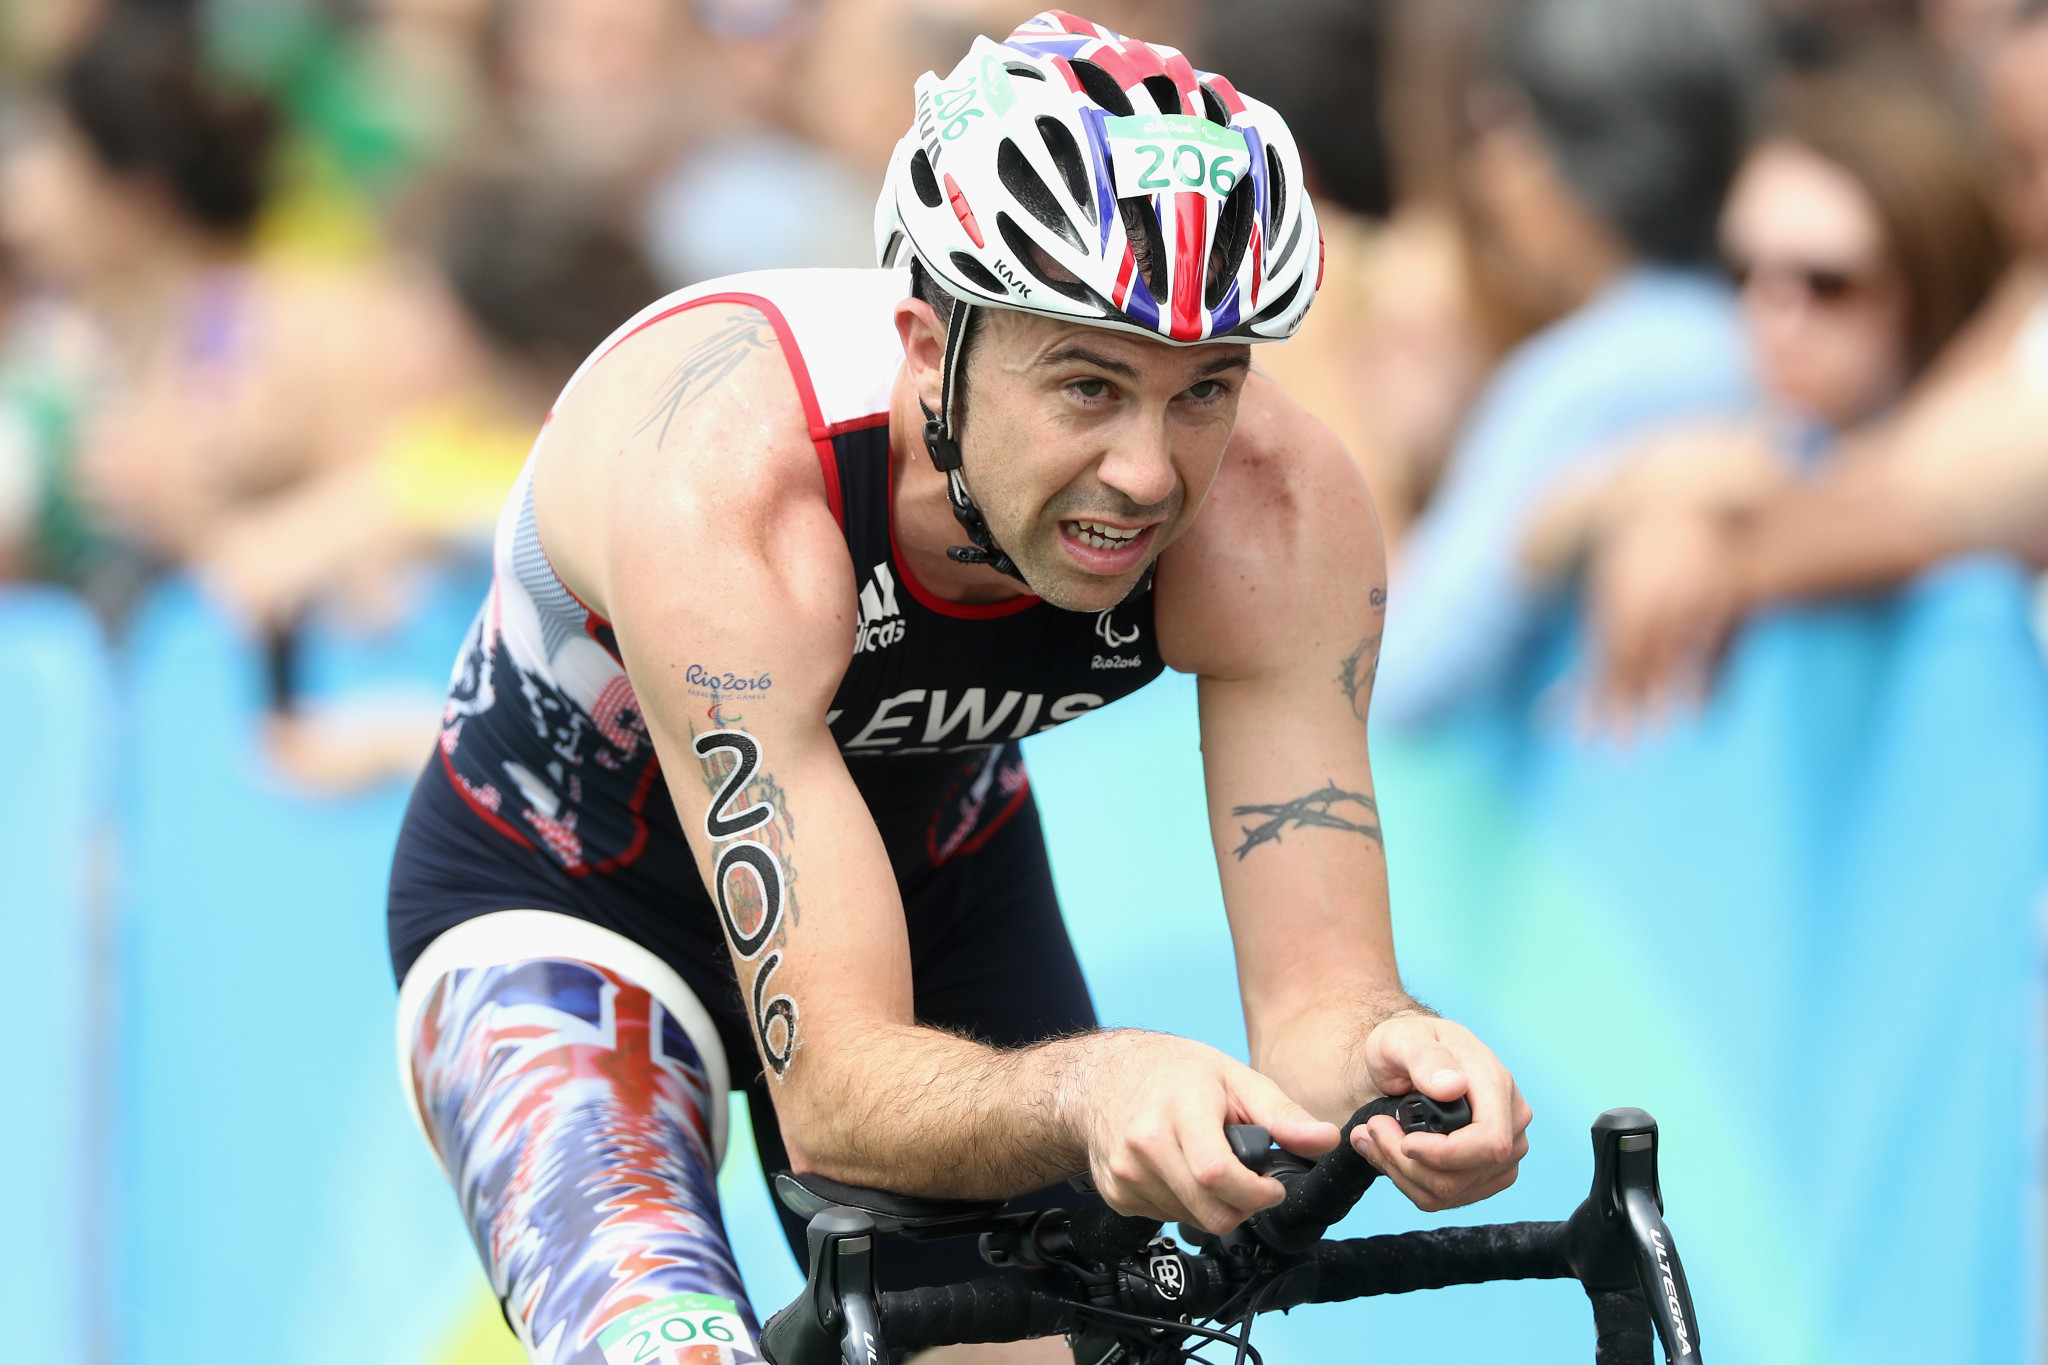 Lewis aiming to mark successful season with victory at season-ending Paratriathlon World Cup